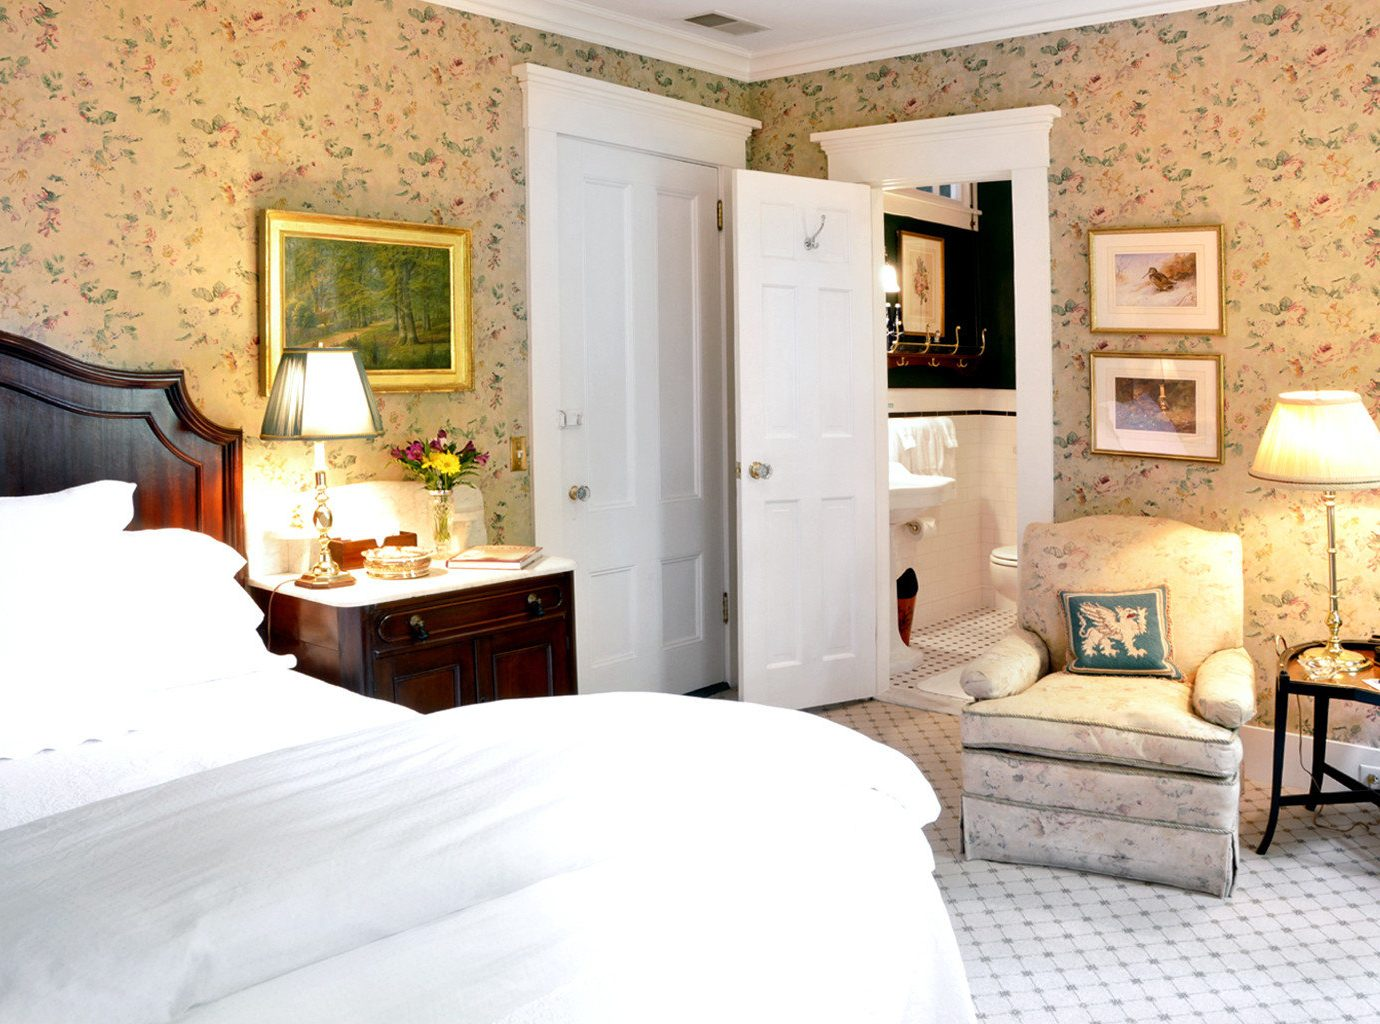 Bedroom Classic Elegant Historic Inn sofa property cottage home Suite living room farmhouse